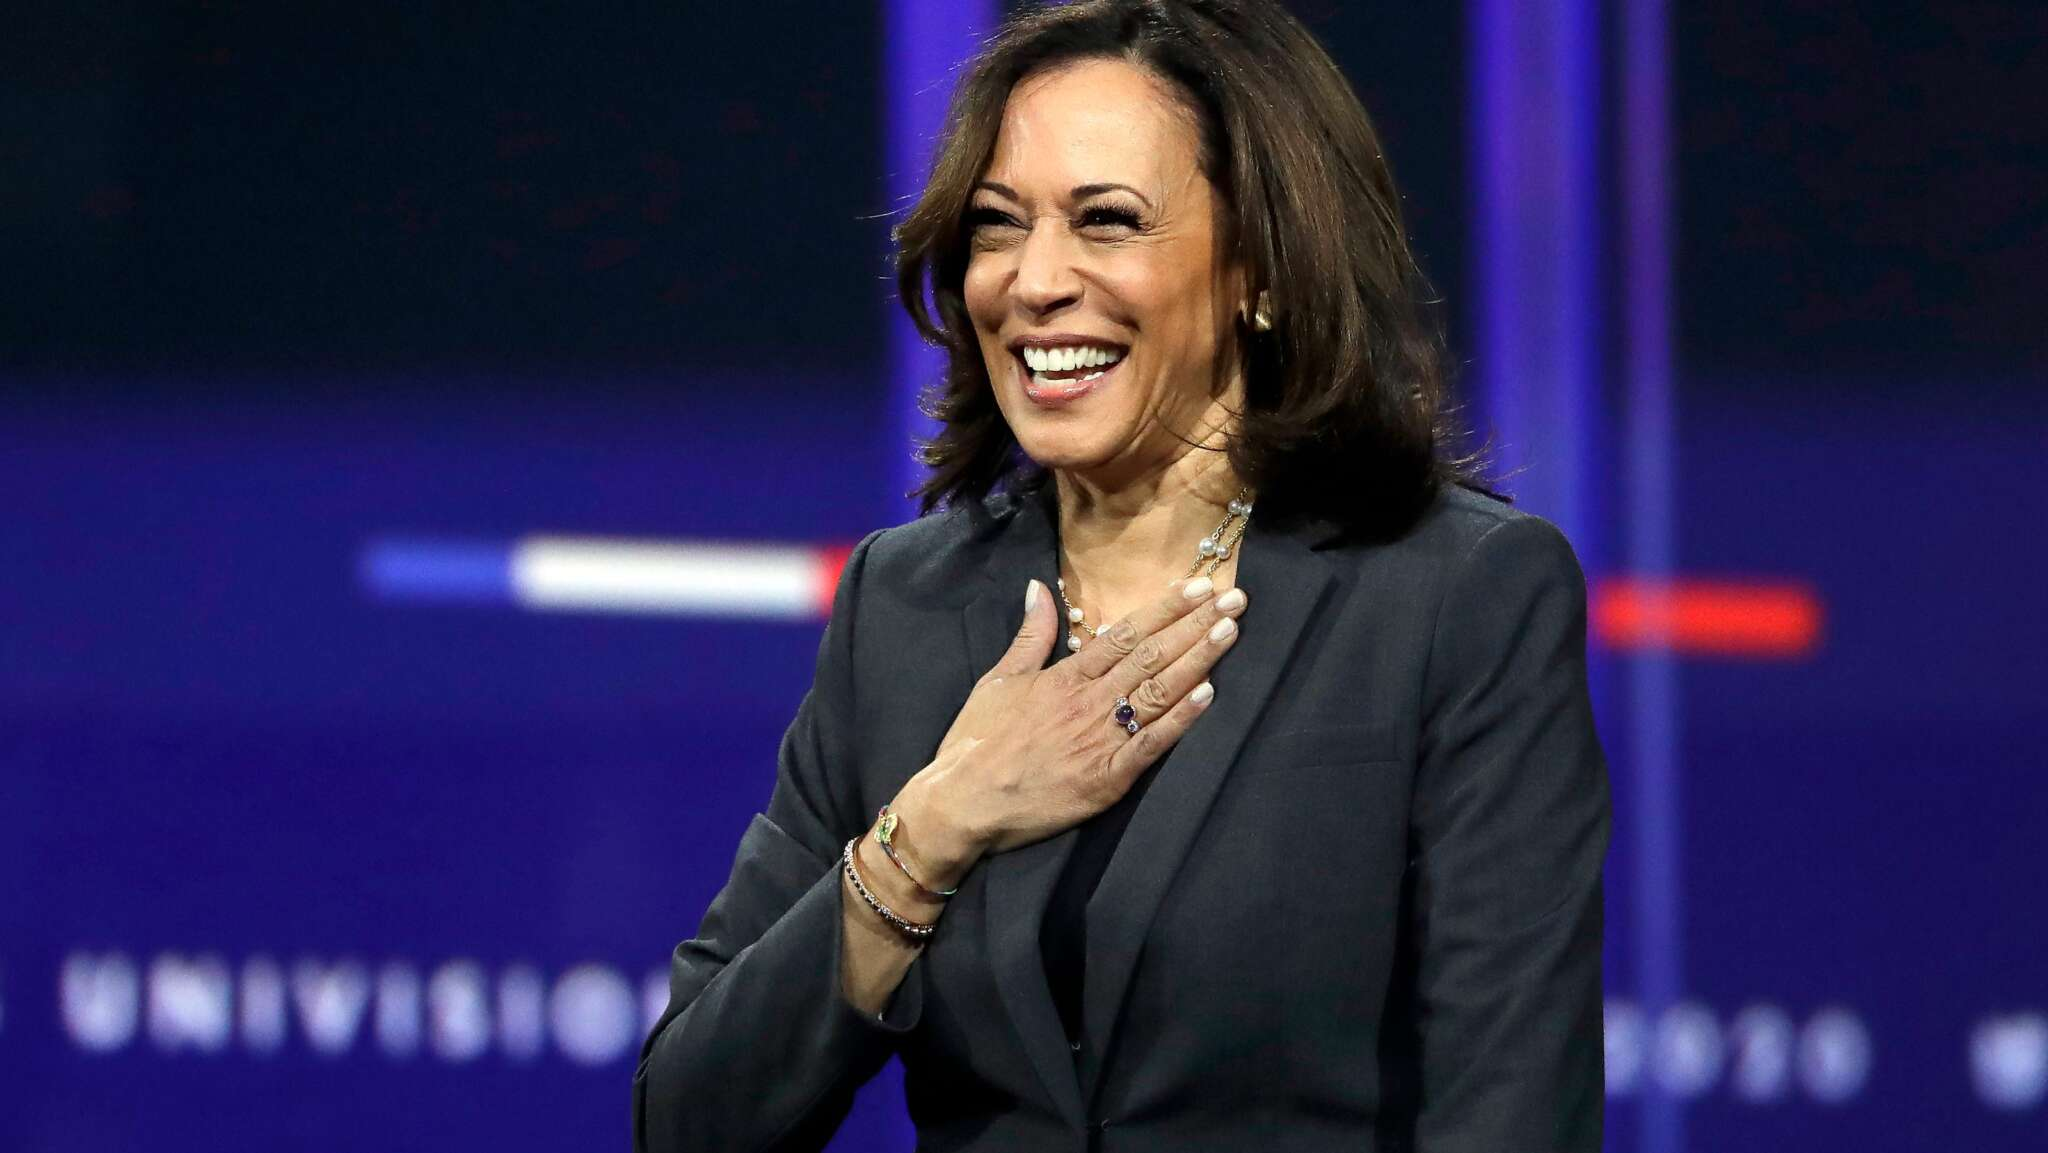 vice-president-kamala-harris-impressed-fans-with-her-speech